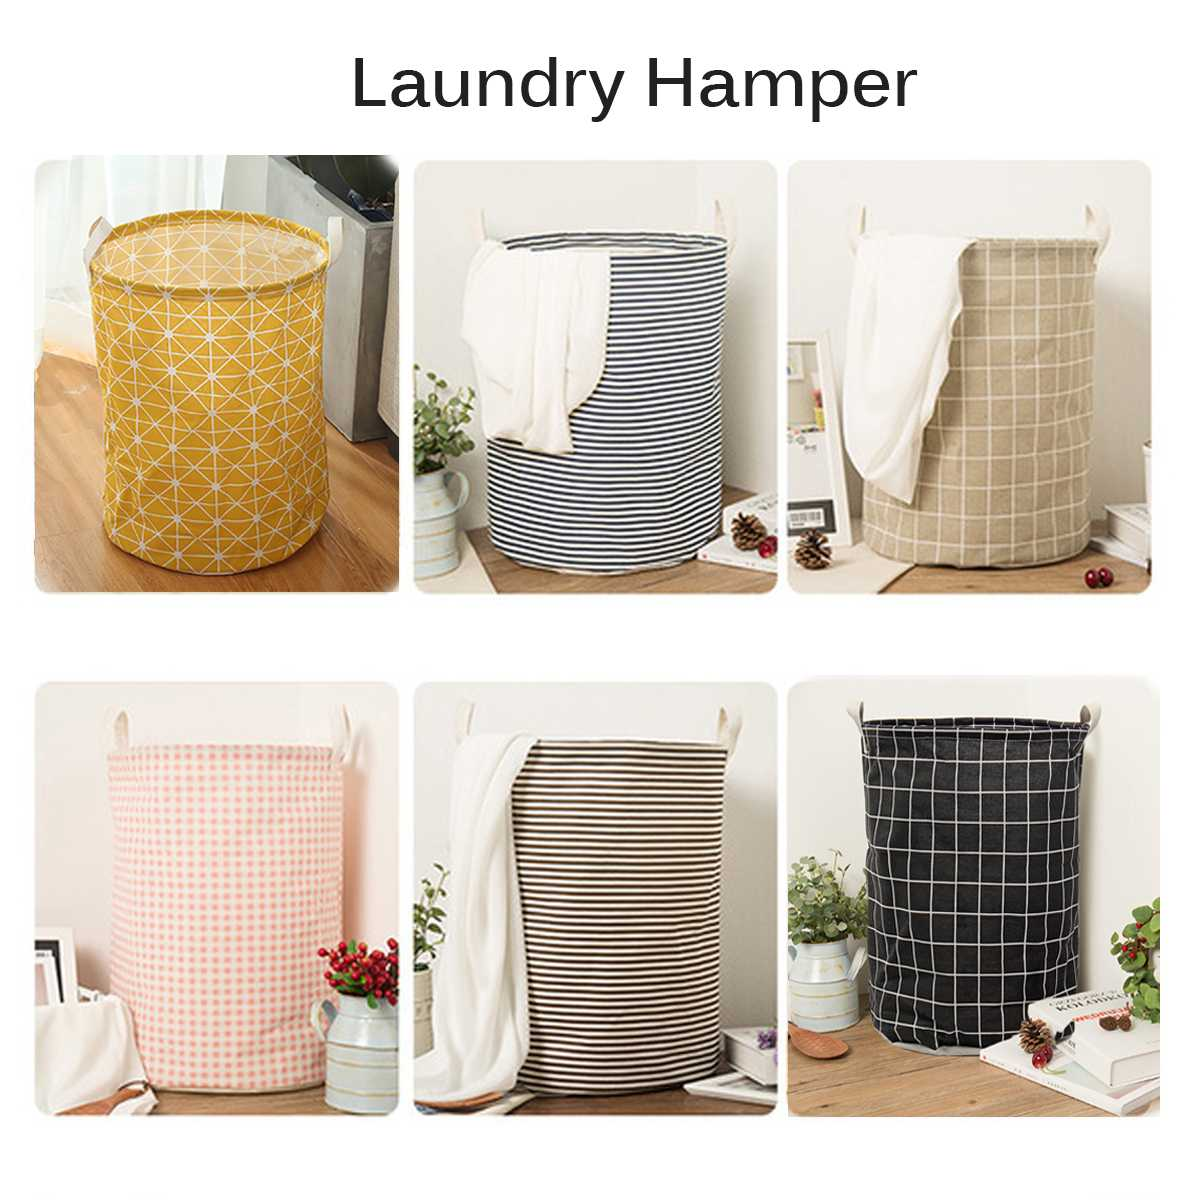 Foldable Clothes Laundry Basket Hamper Canvas Cotton Linen Storage Organizer Bag Large Gift Box Home Sundries Picnic Basket Toy